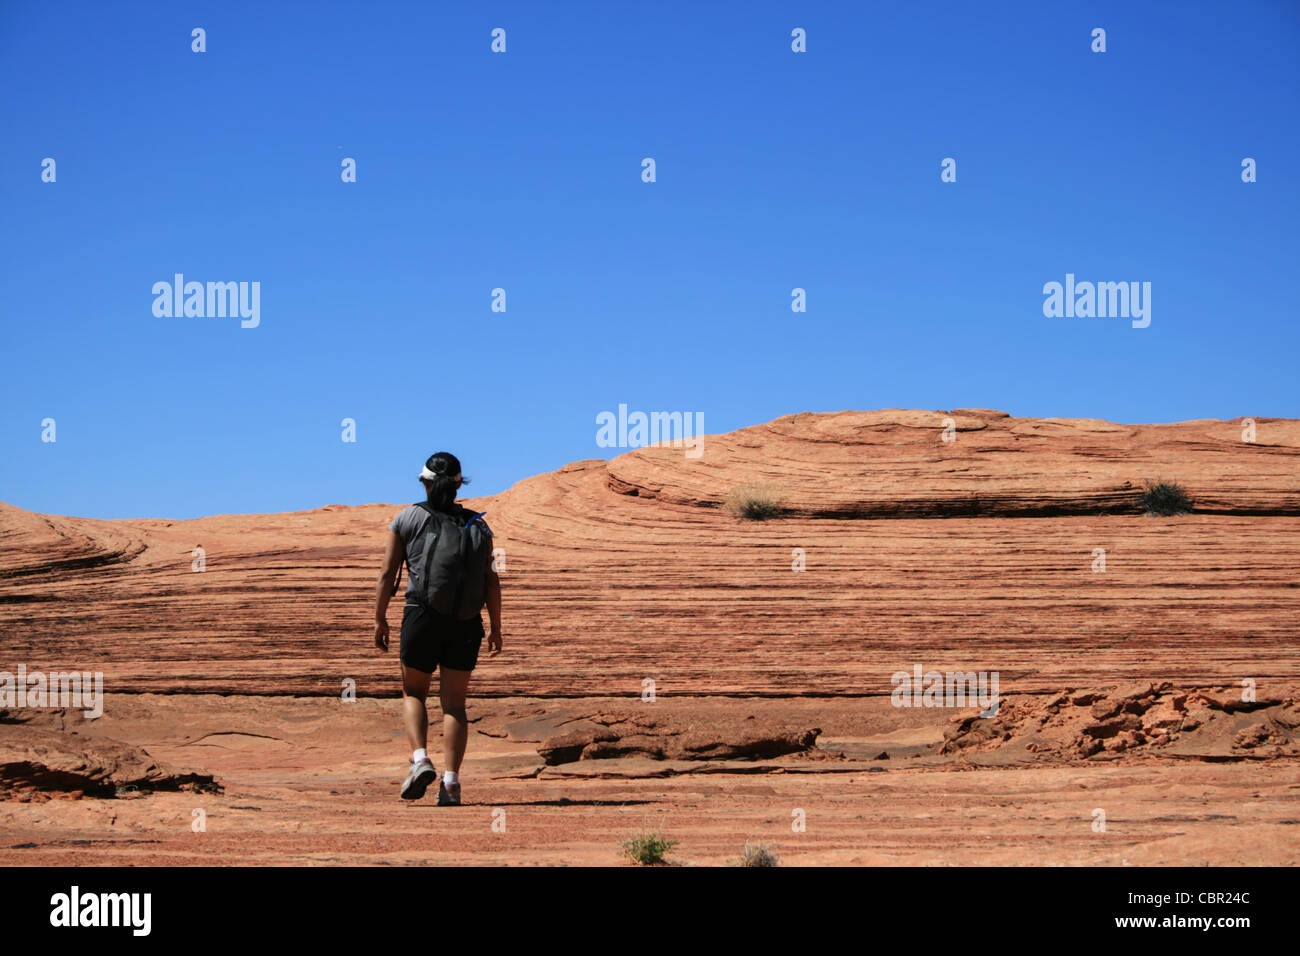 a woman walks across sandstone slickrock in the desert with blue sky copy space - Stock Image